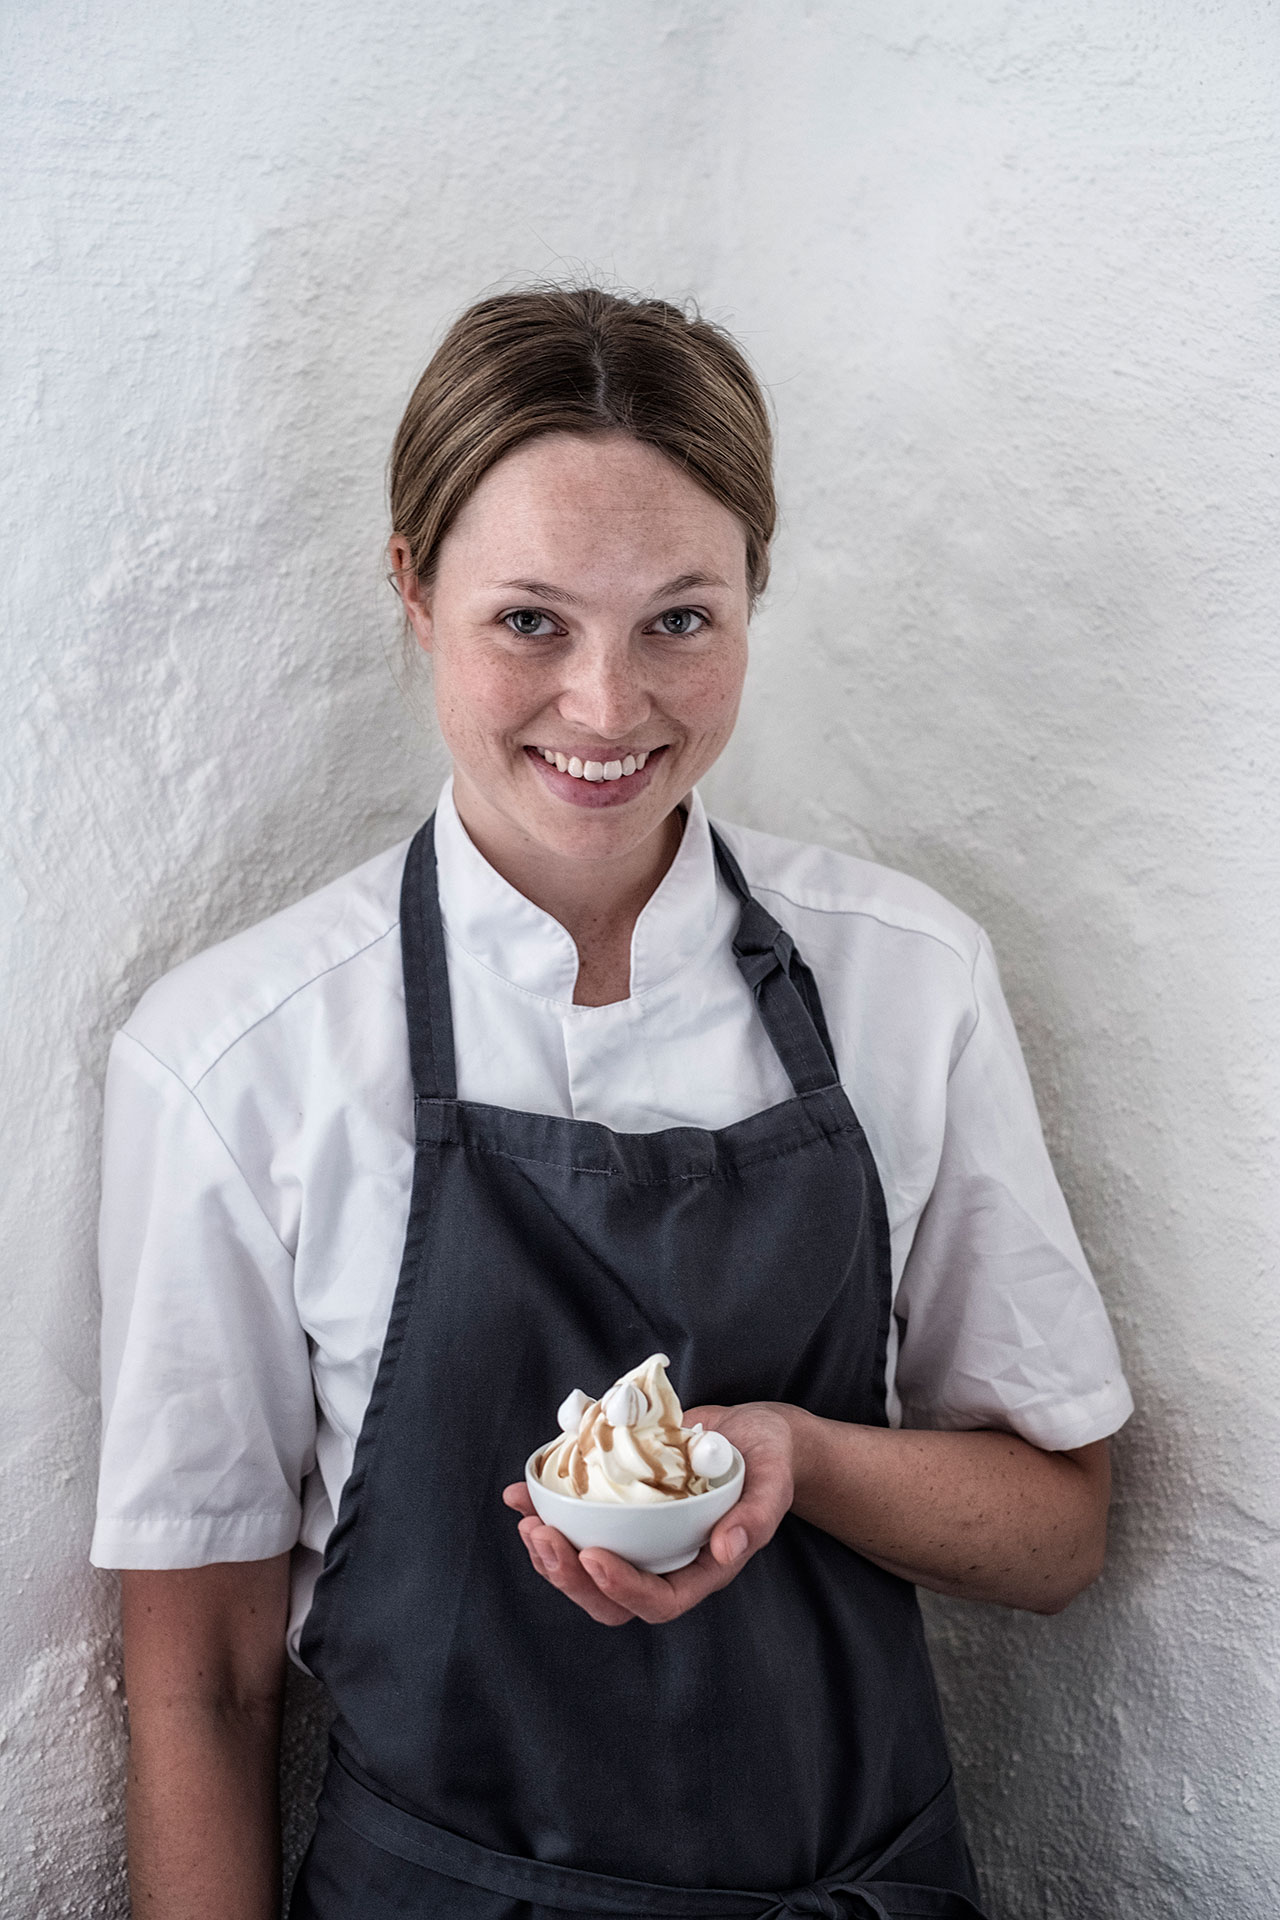 Elin Jönsson, baker at Wanås Restaurant, with the soft ice cream made from organic milk from the farm. Photo by PA Jörgensen.